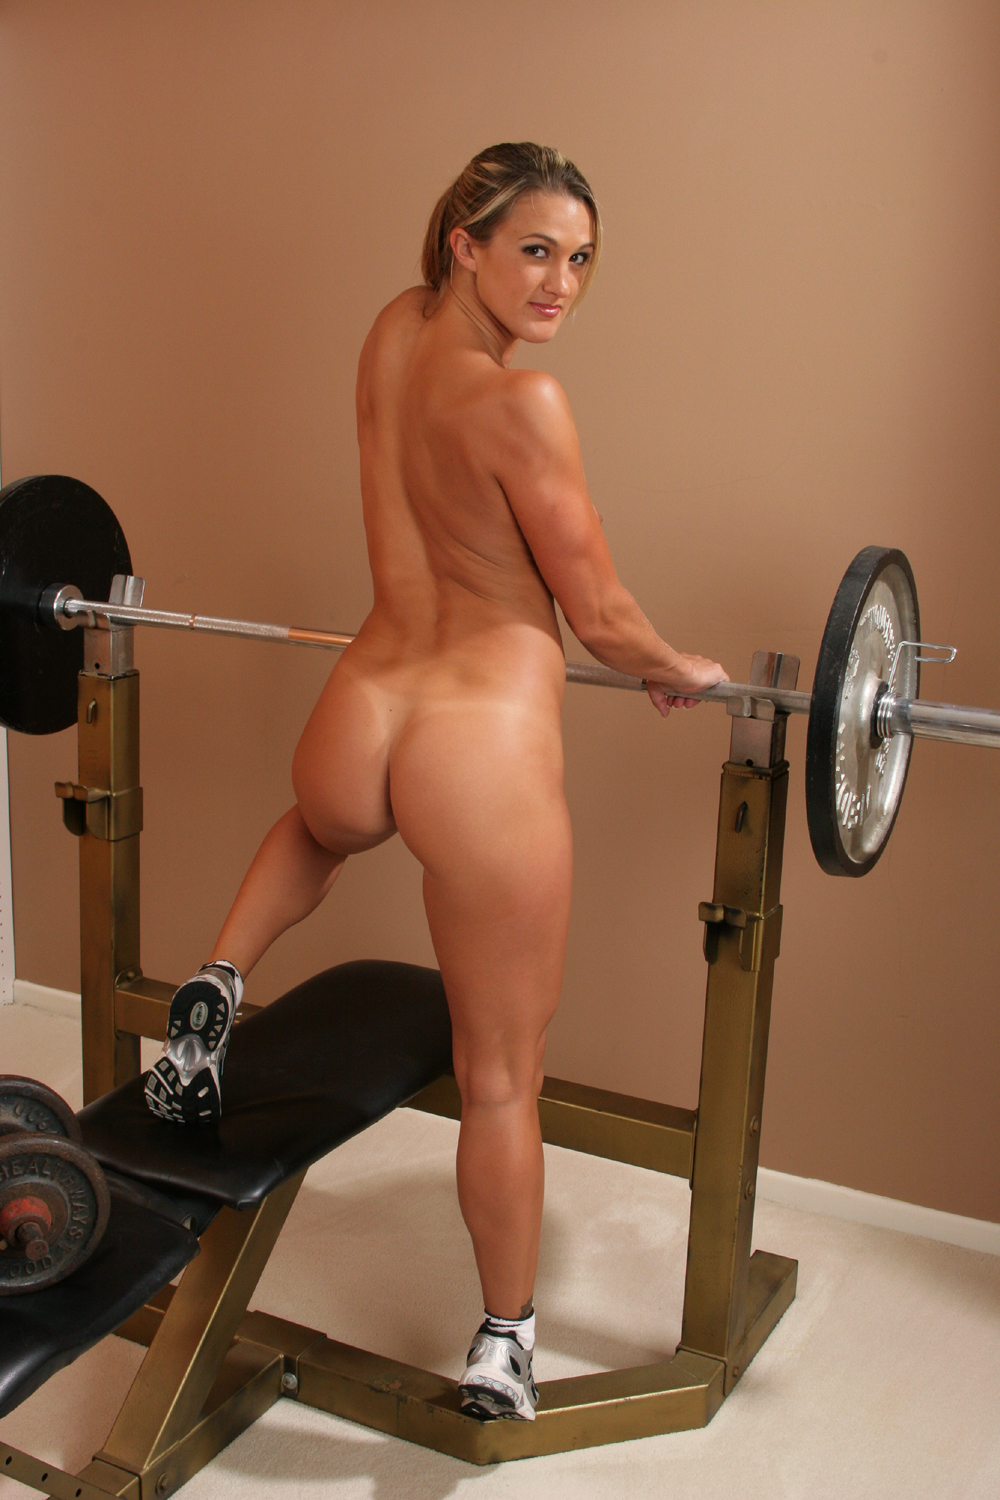 sexy-workout-pussy-most-people-are-inherently-bisexual